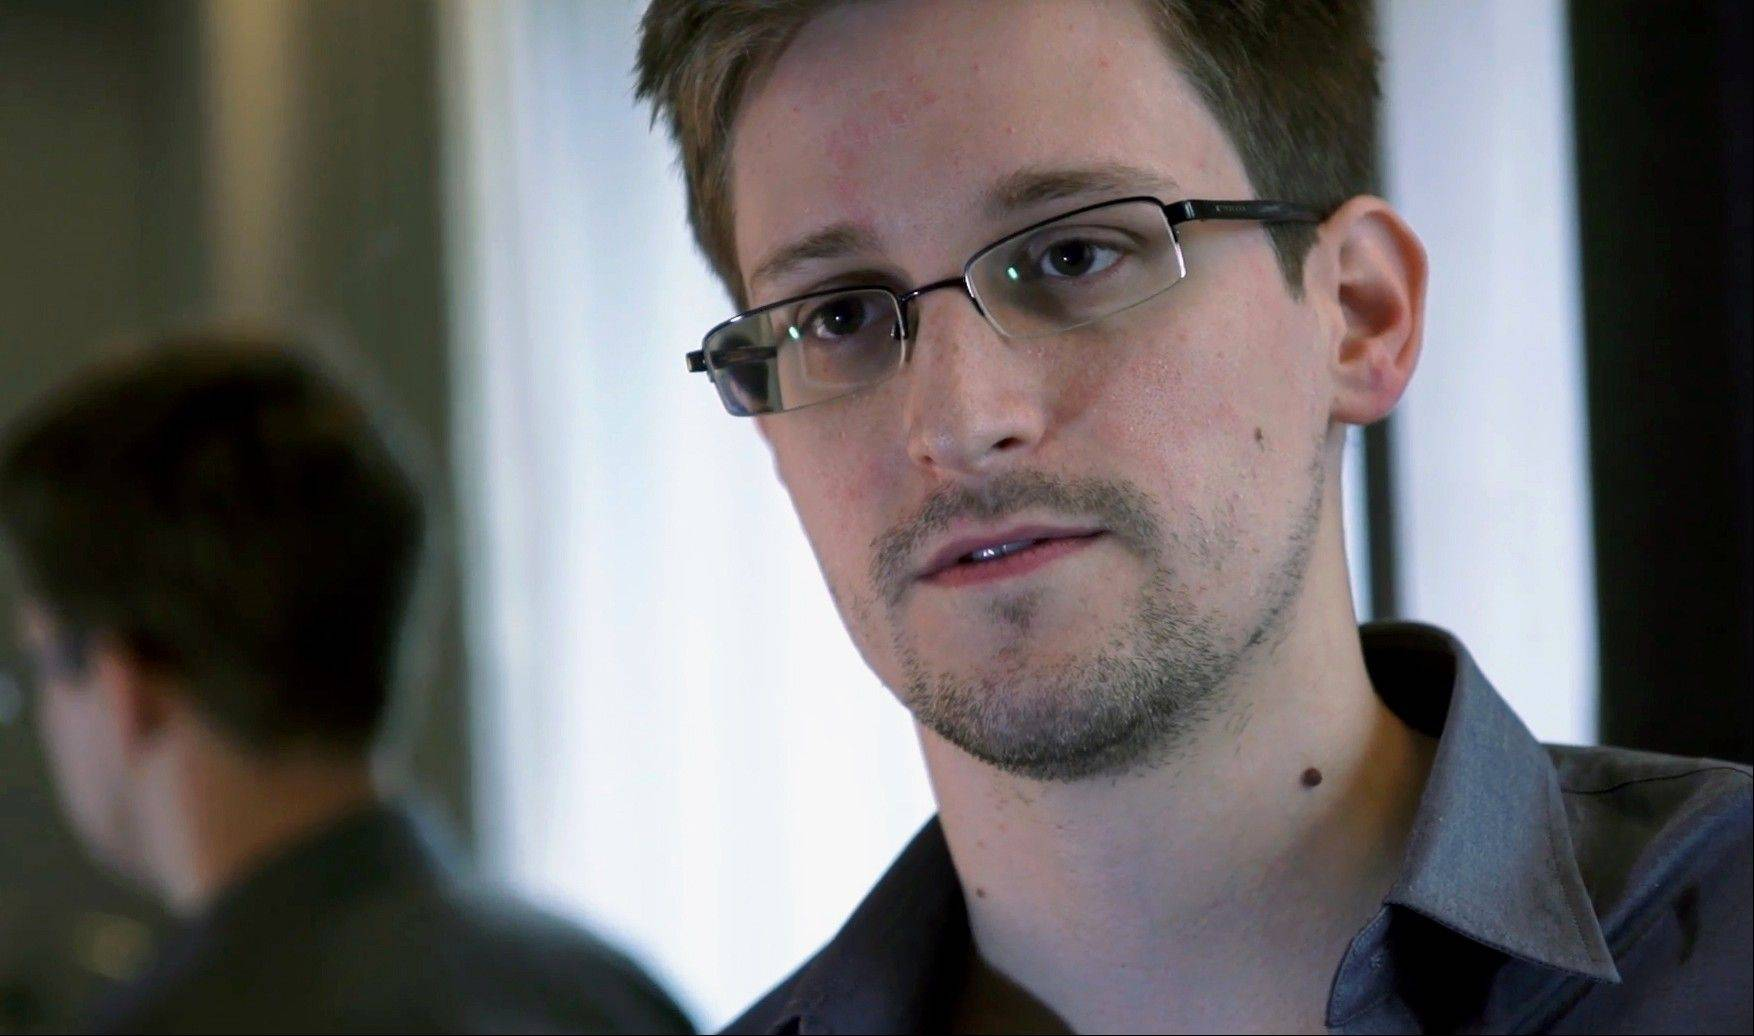 NSA leaker Edward Snowden spent two days in the Russian Consulate in Hong Kong directly before flying to Moscow on what turned out to be an abortive attempt to reach asylum in Latin America, the respected newspaper Kommersant reported Monday, citing unidentified sources in Snowden�s circle and the Russian government.